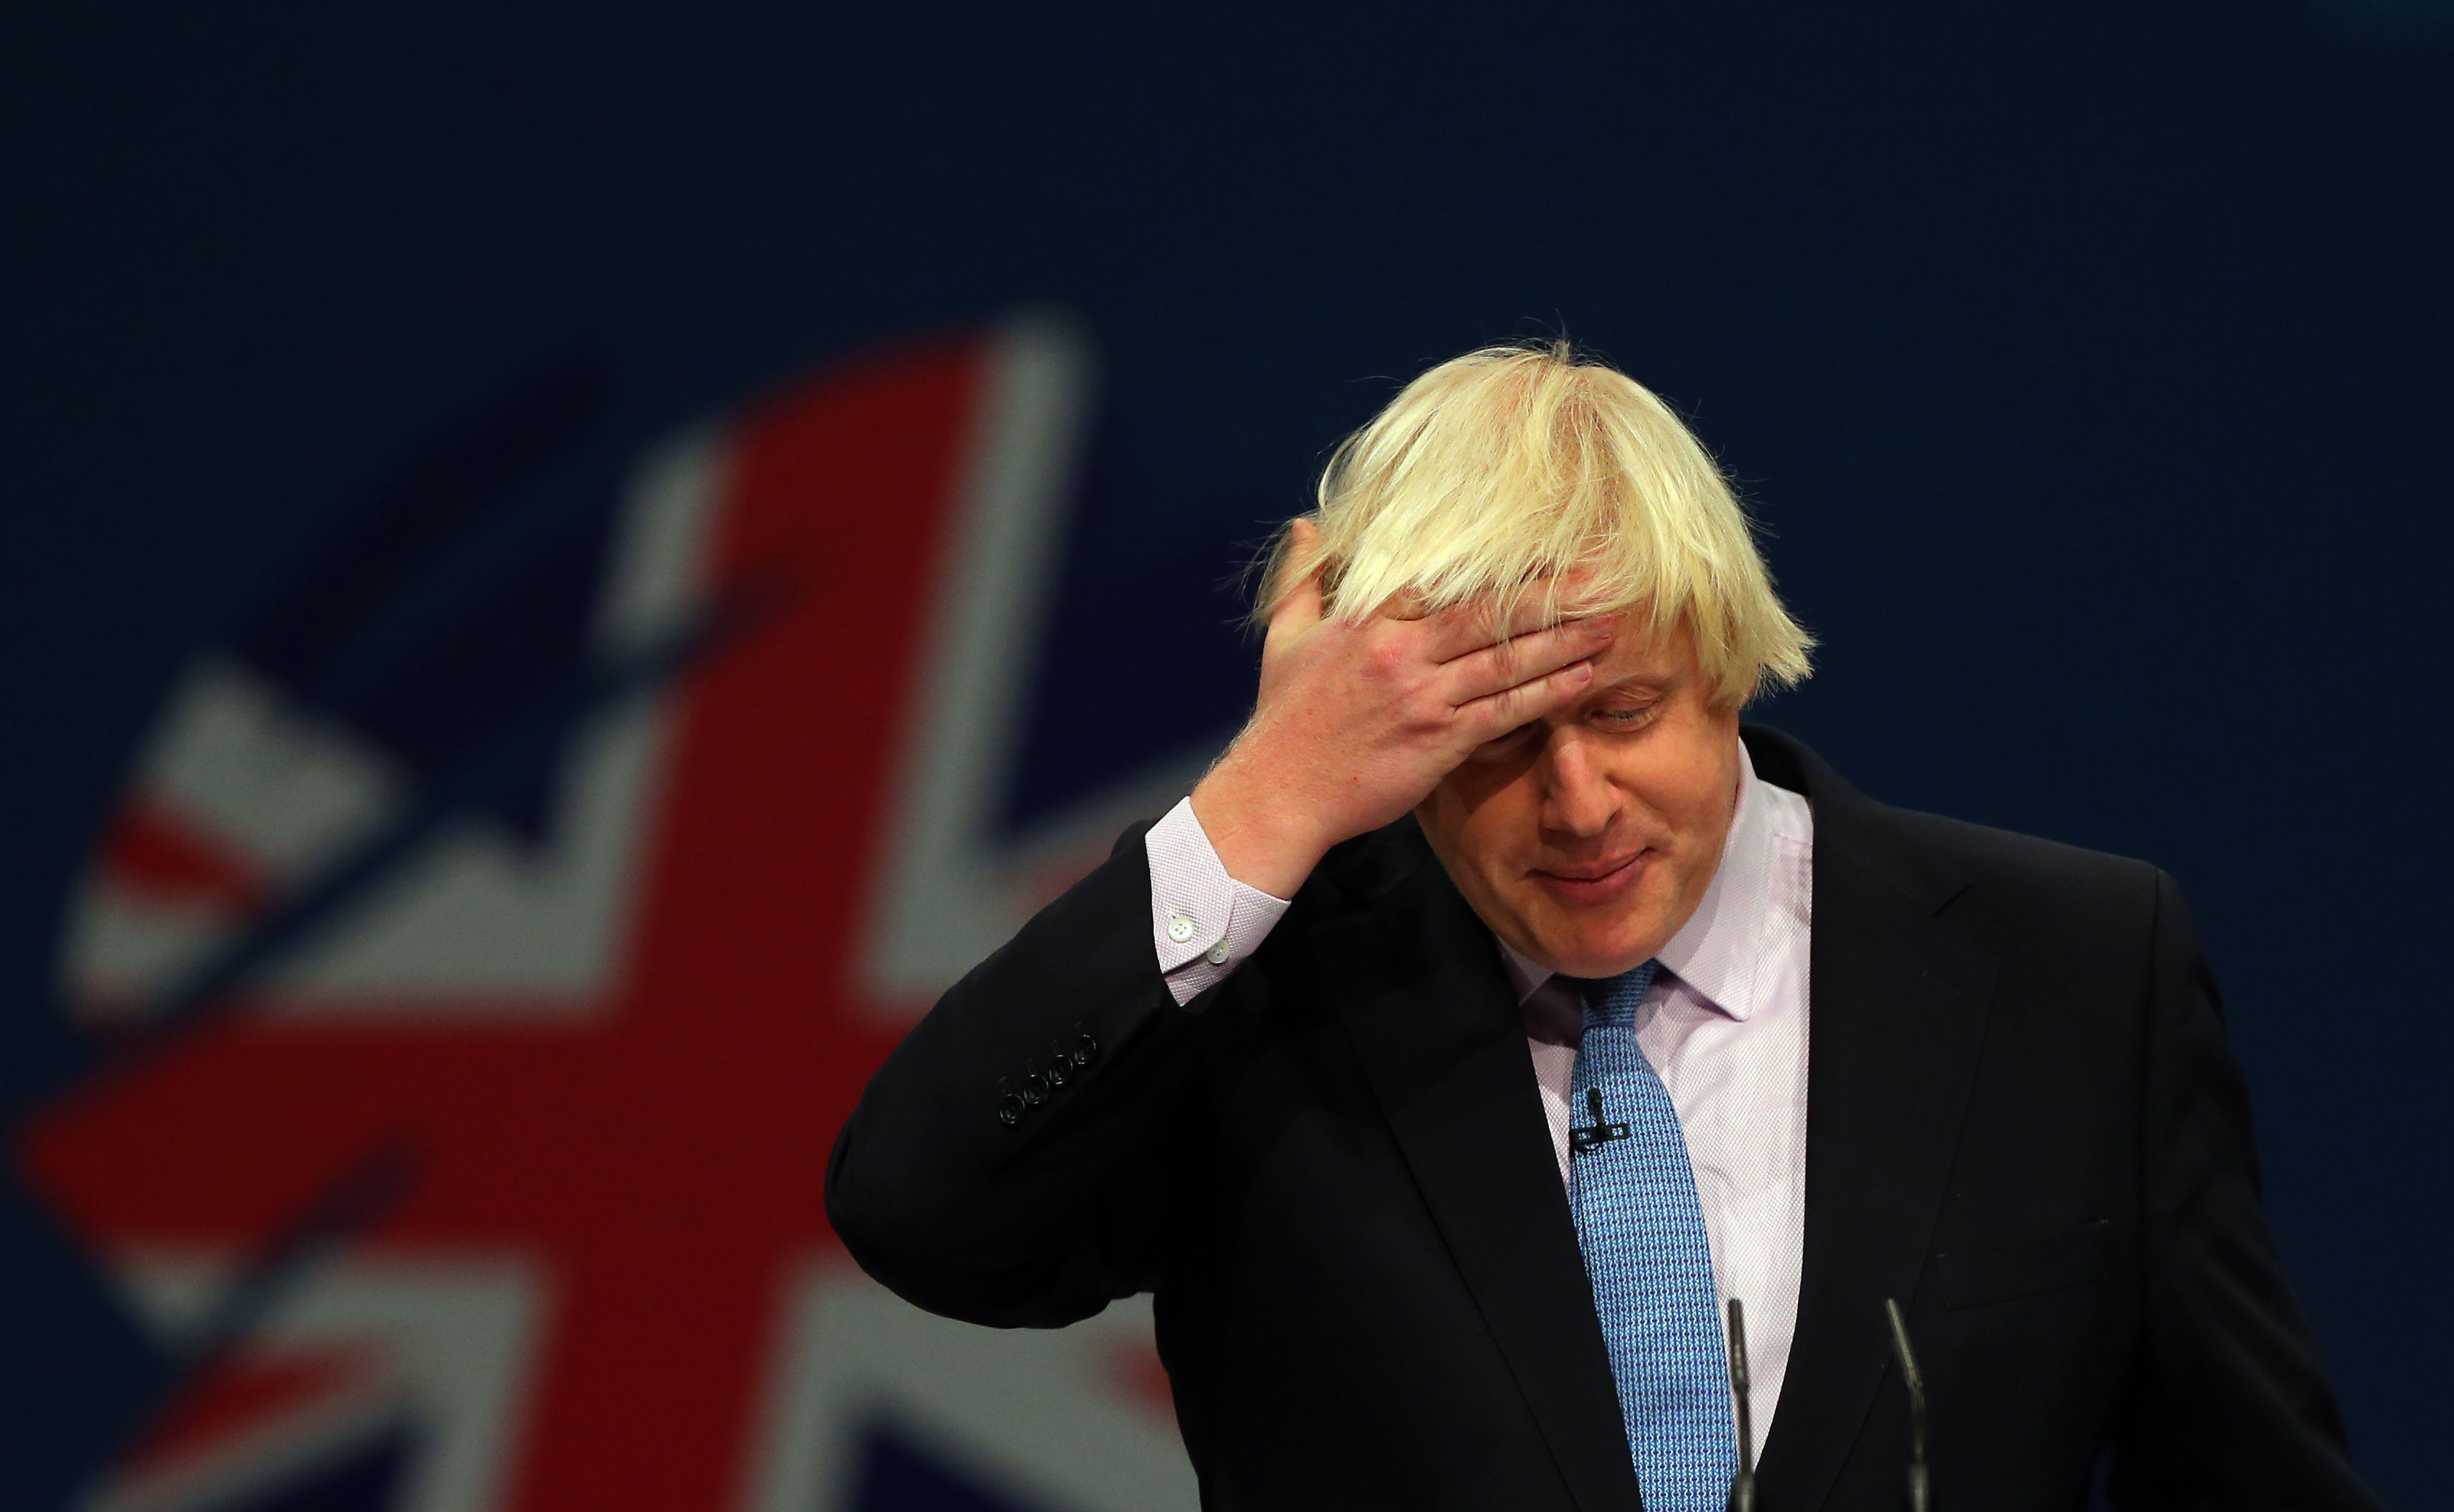 Mayor of London Boris Johnson delivers his speech to delegates on the third day of the Conservative Party Conference at Manchester Central in Manchester.